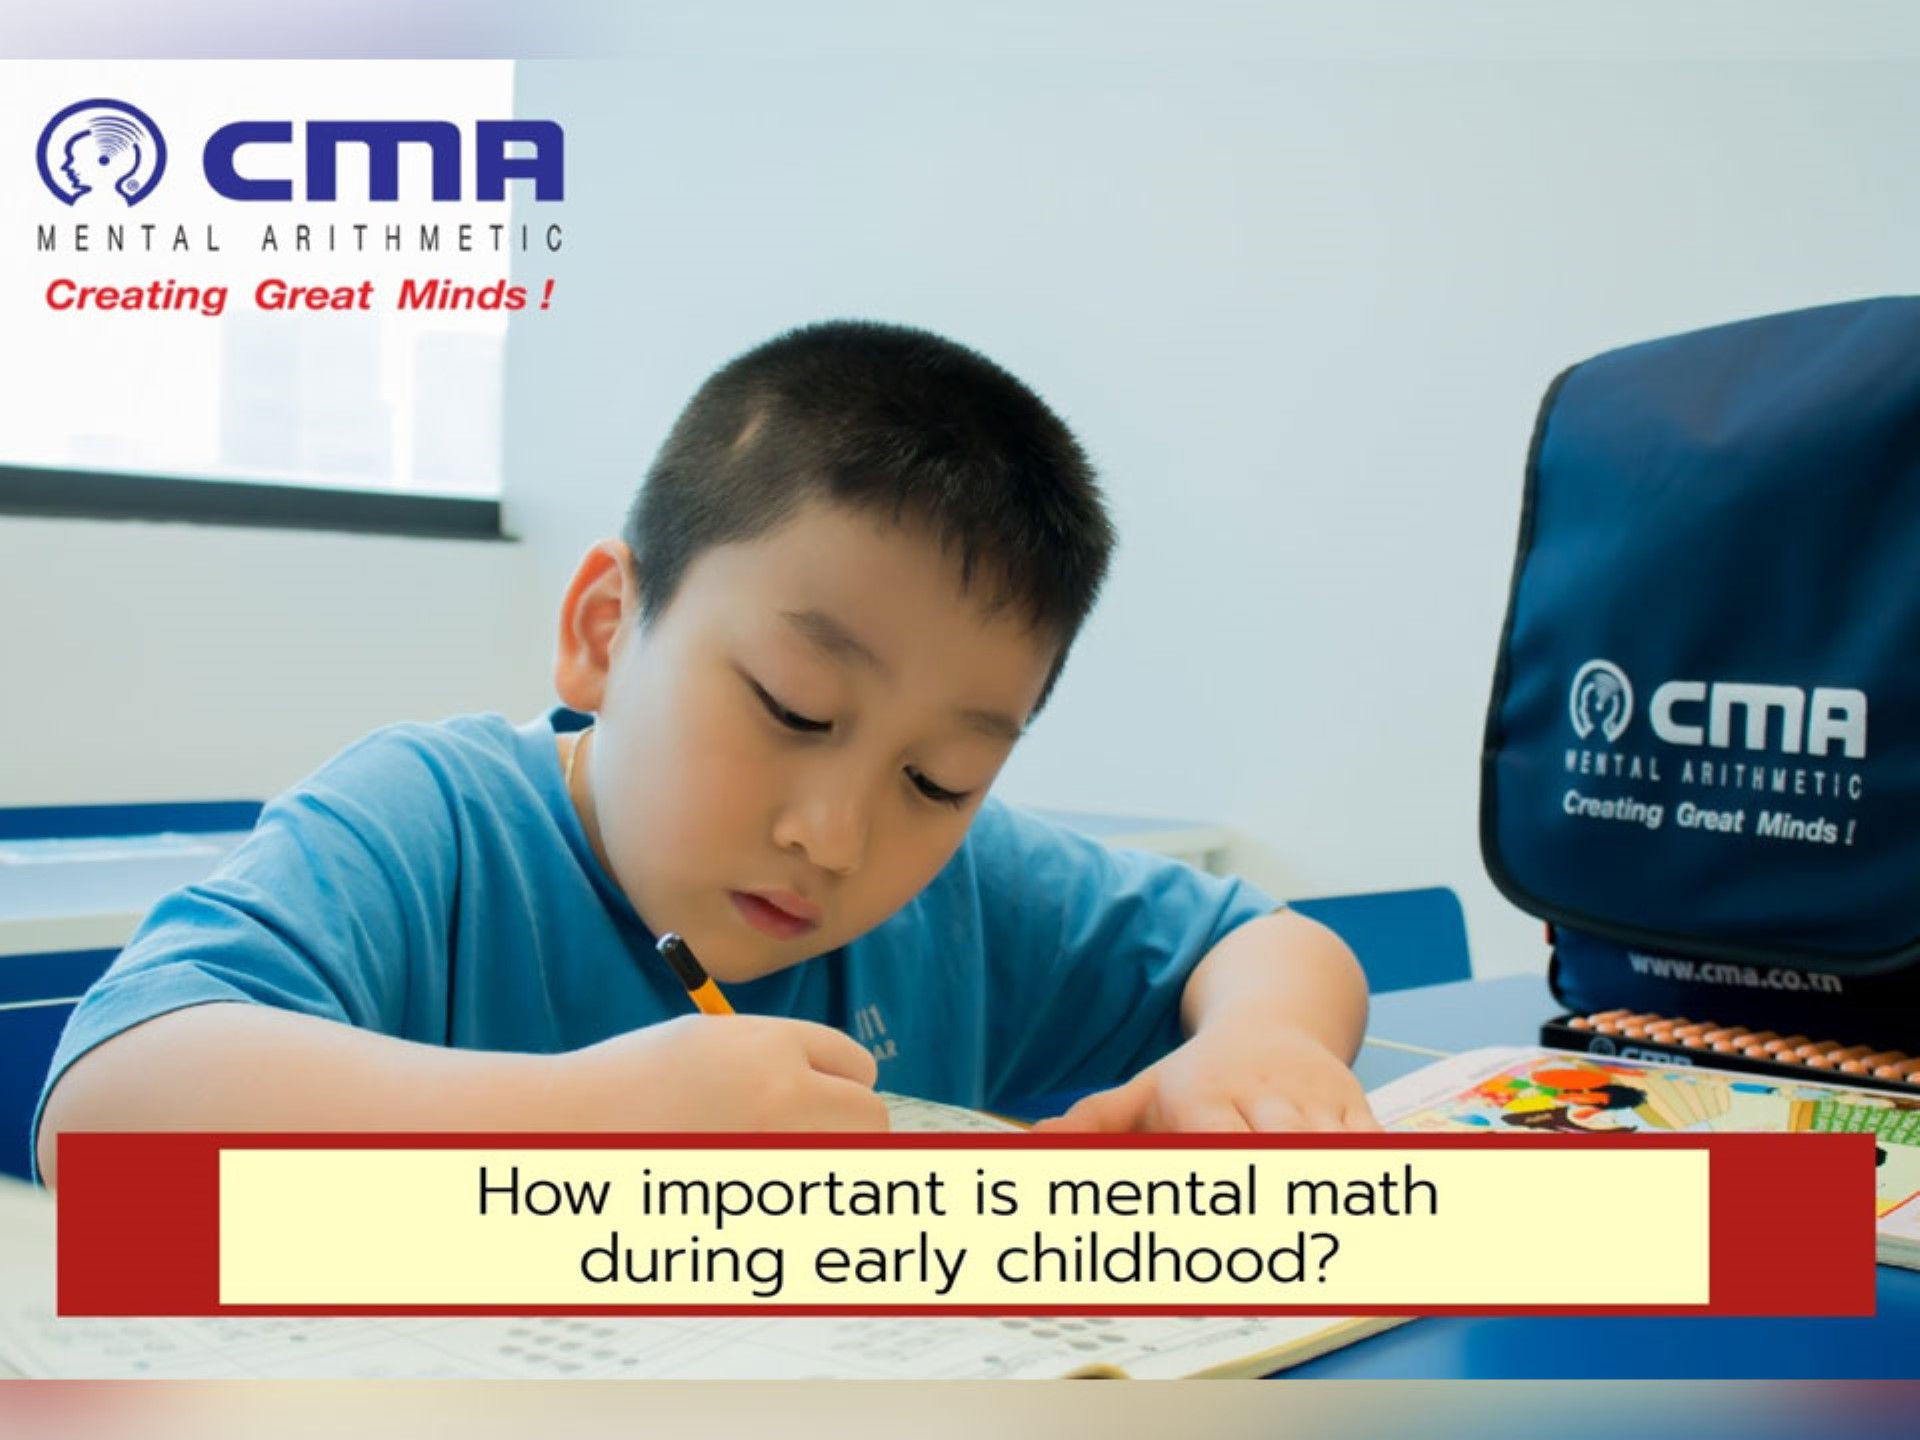 How important is mental math during early childhood?